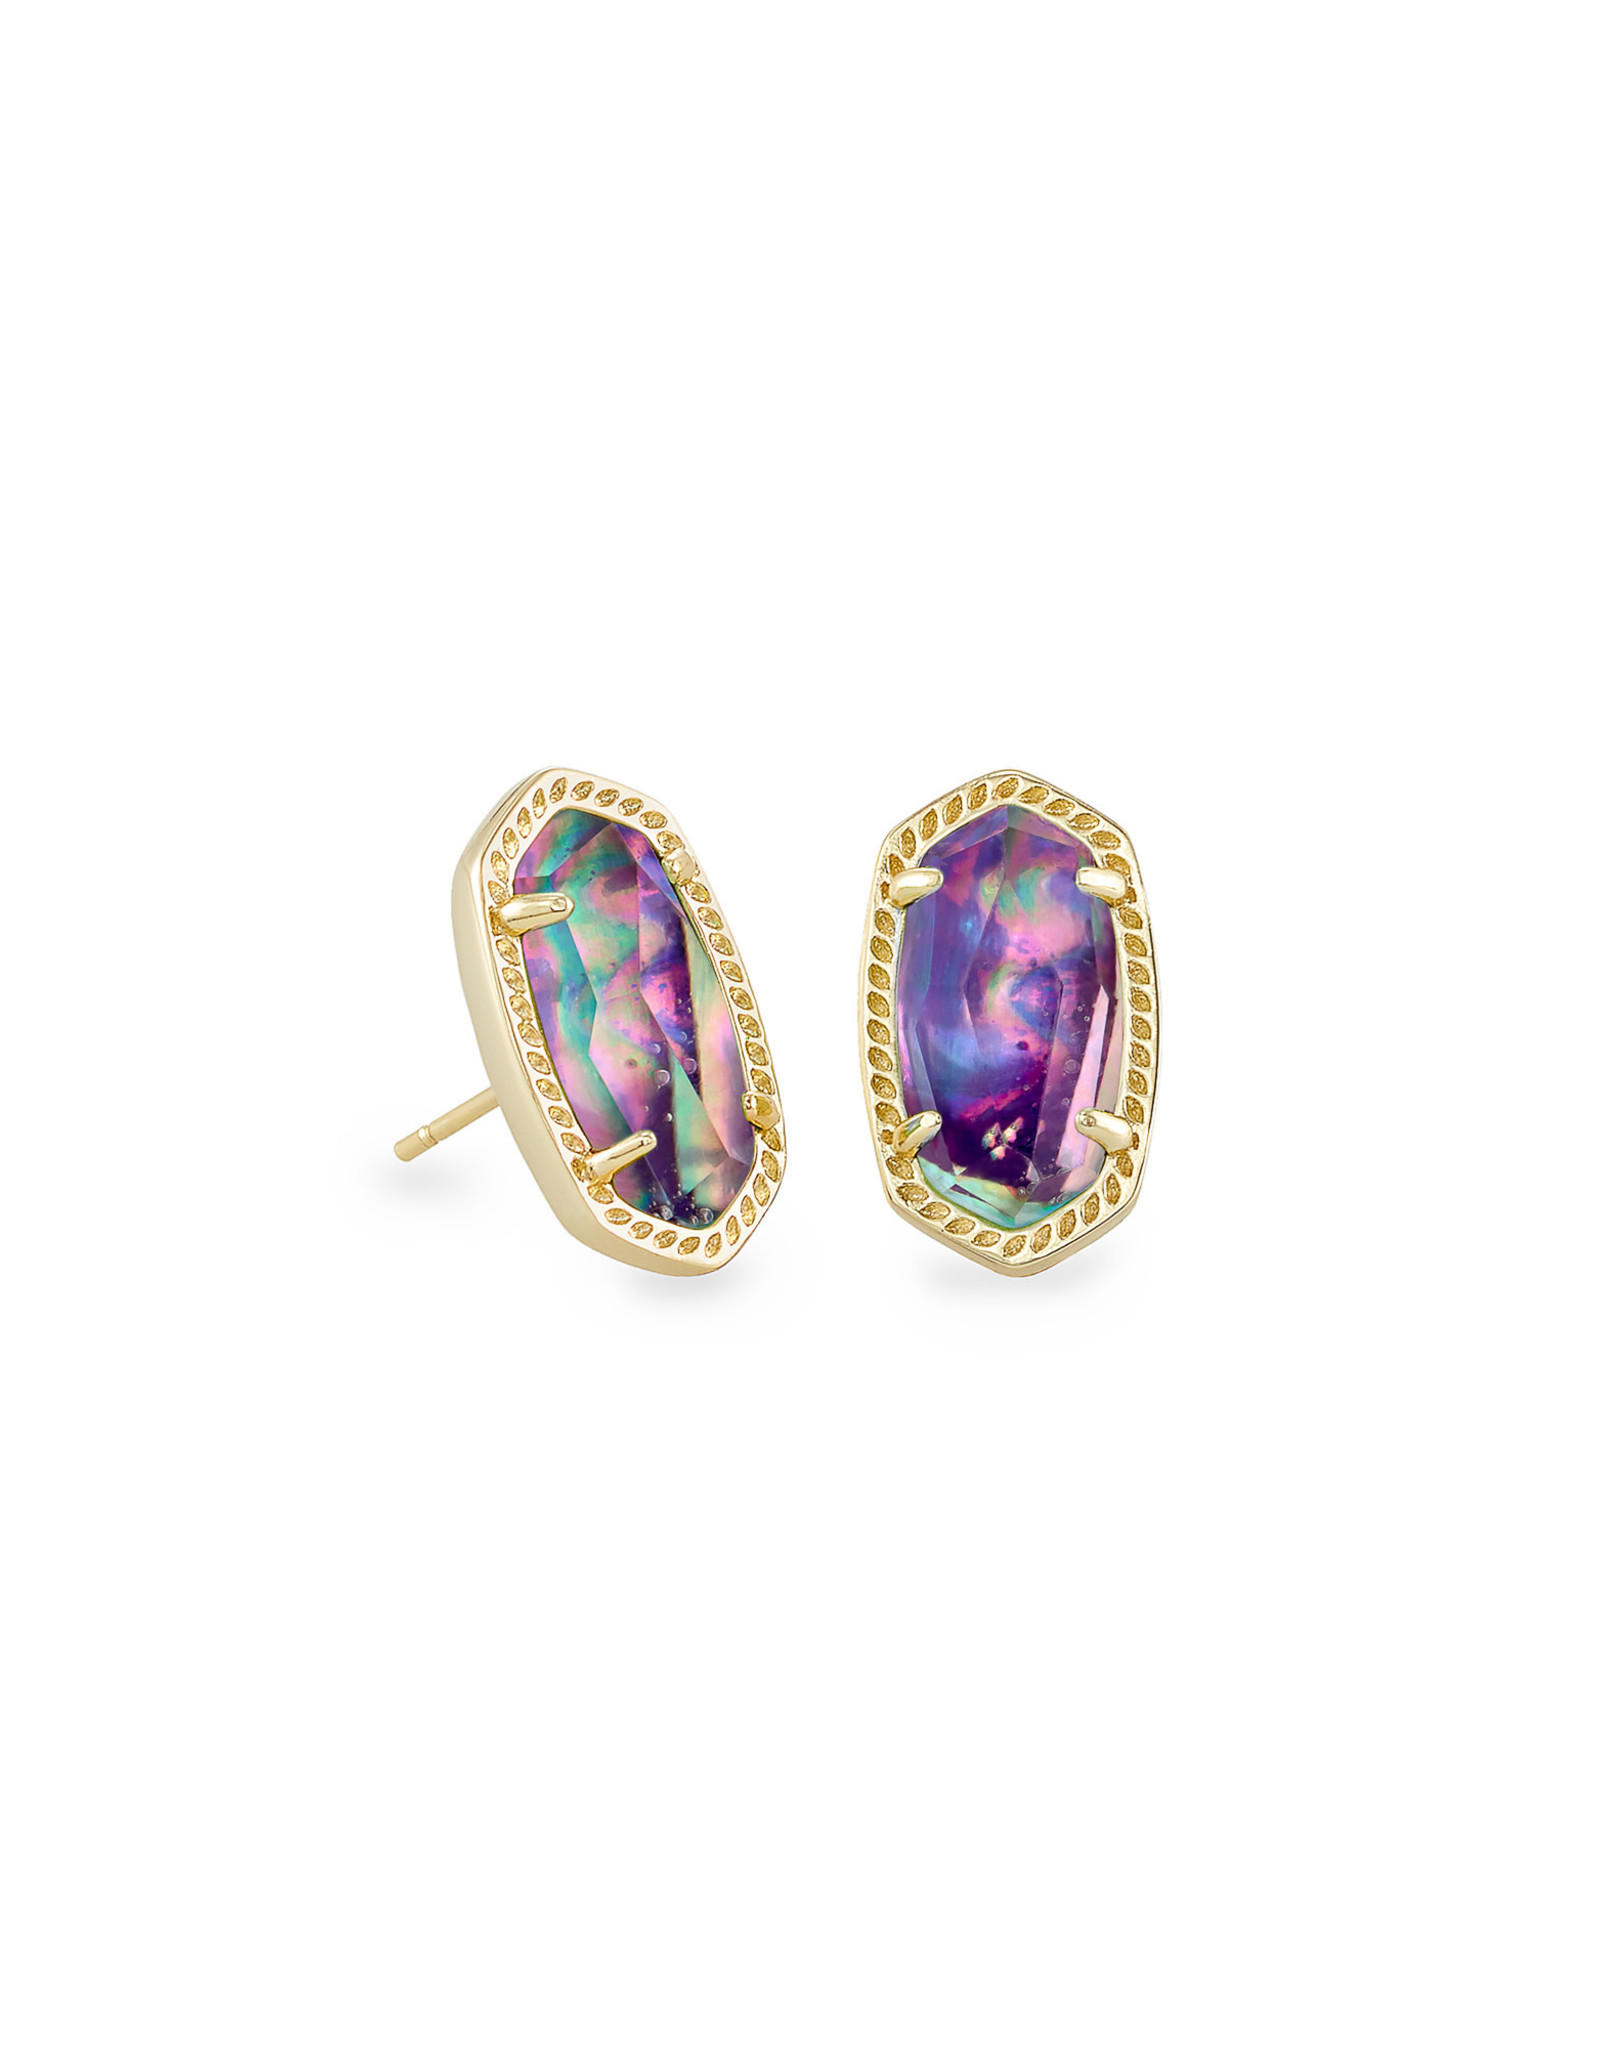 Kendra Scott Ellie Earring - Lilac Abalone/Gold